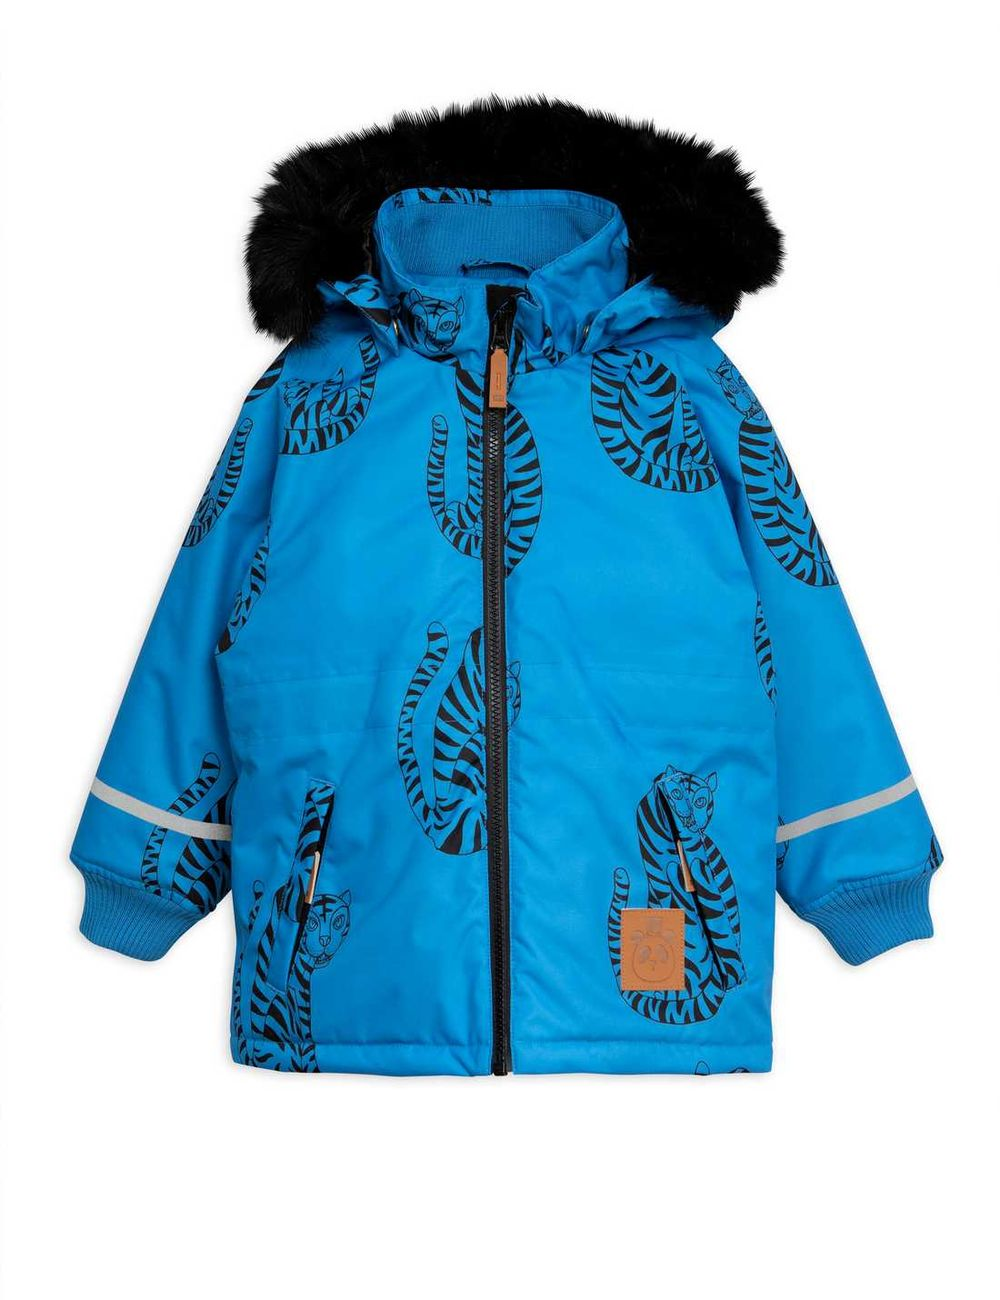 MINI RODINI K2 TIGER PARKA, BLUE